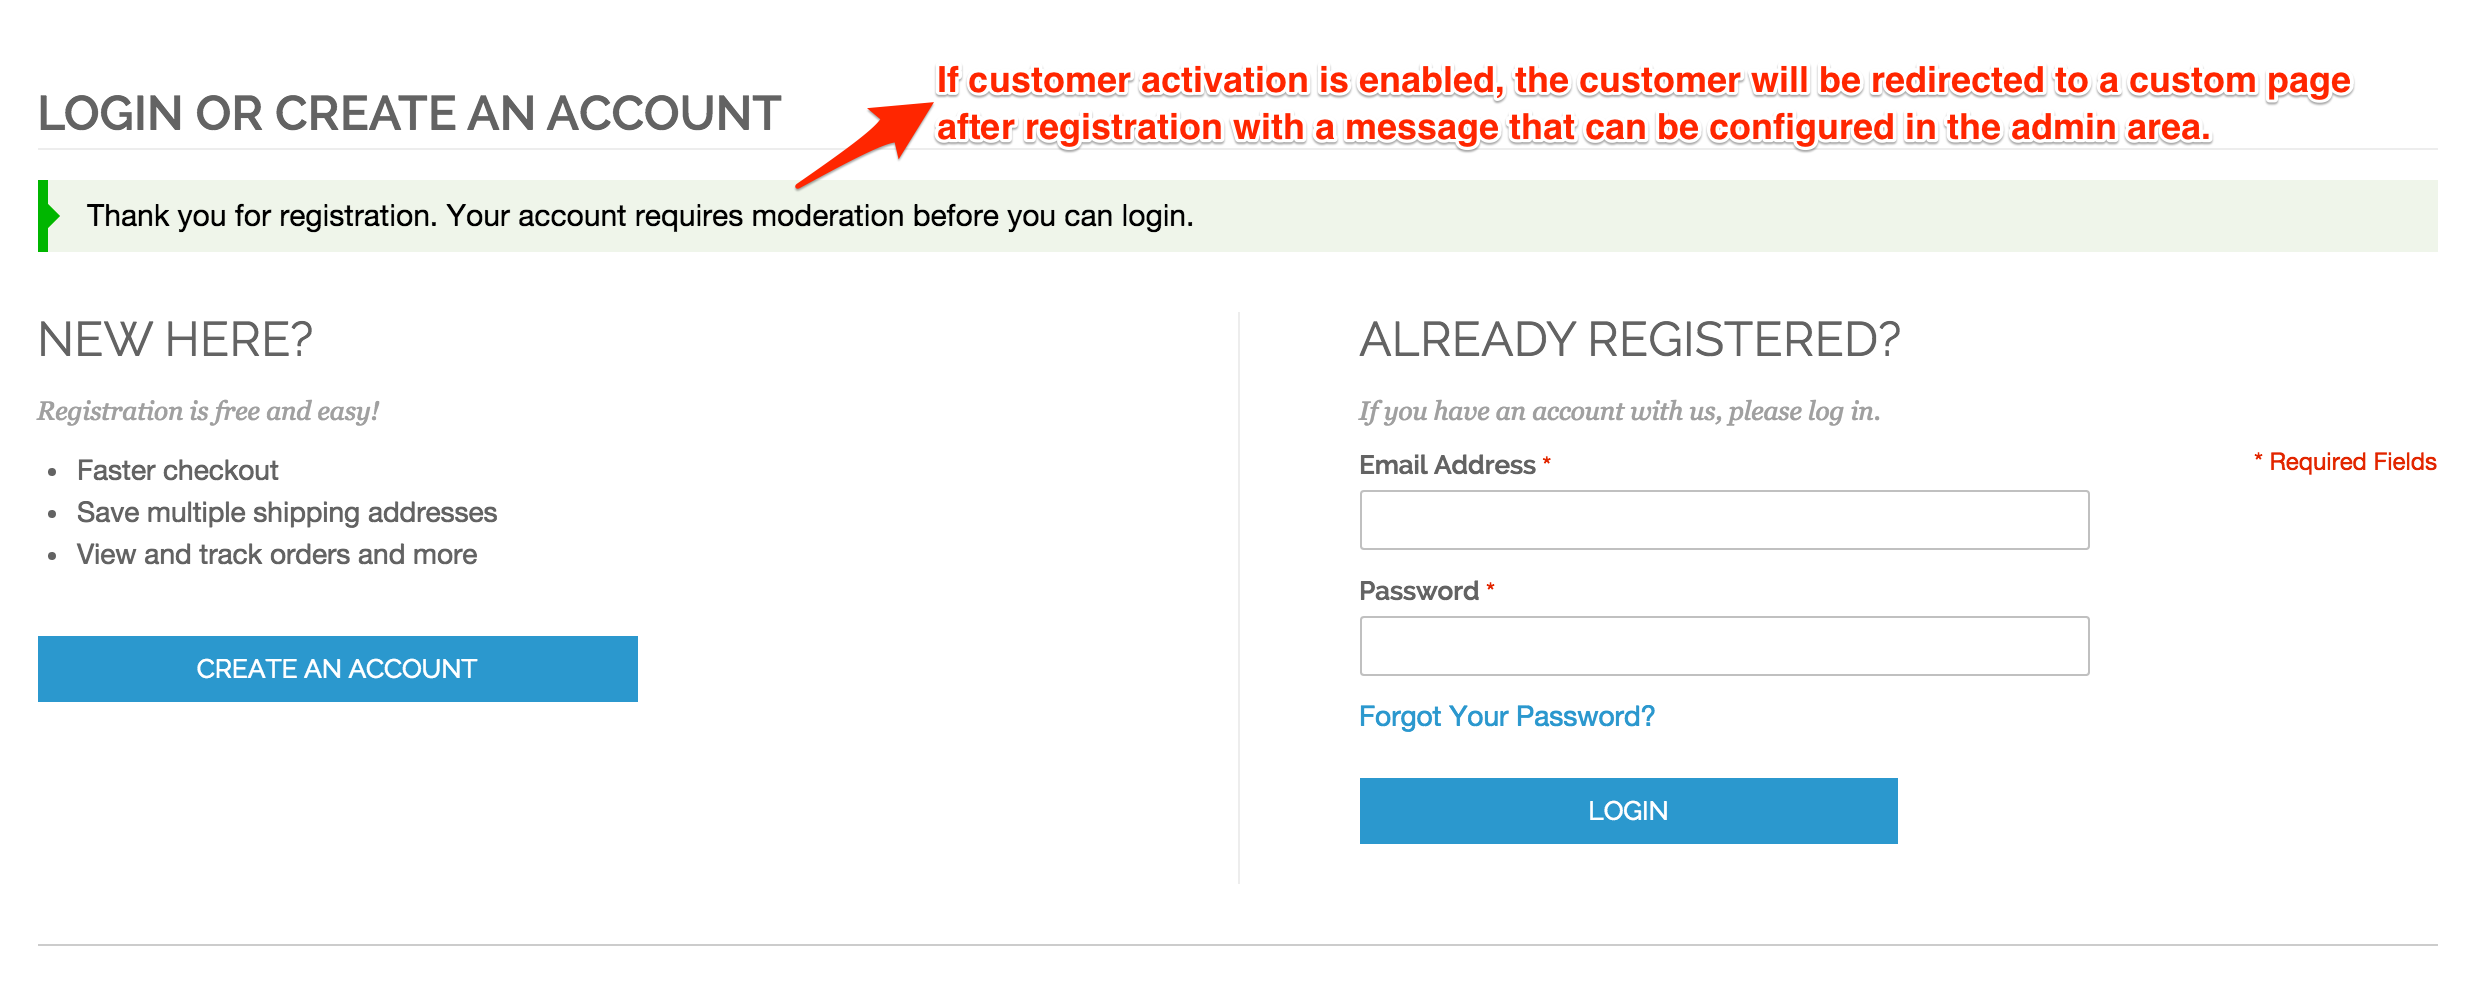 Customer/account/login - Account Activation Required Message After Registration